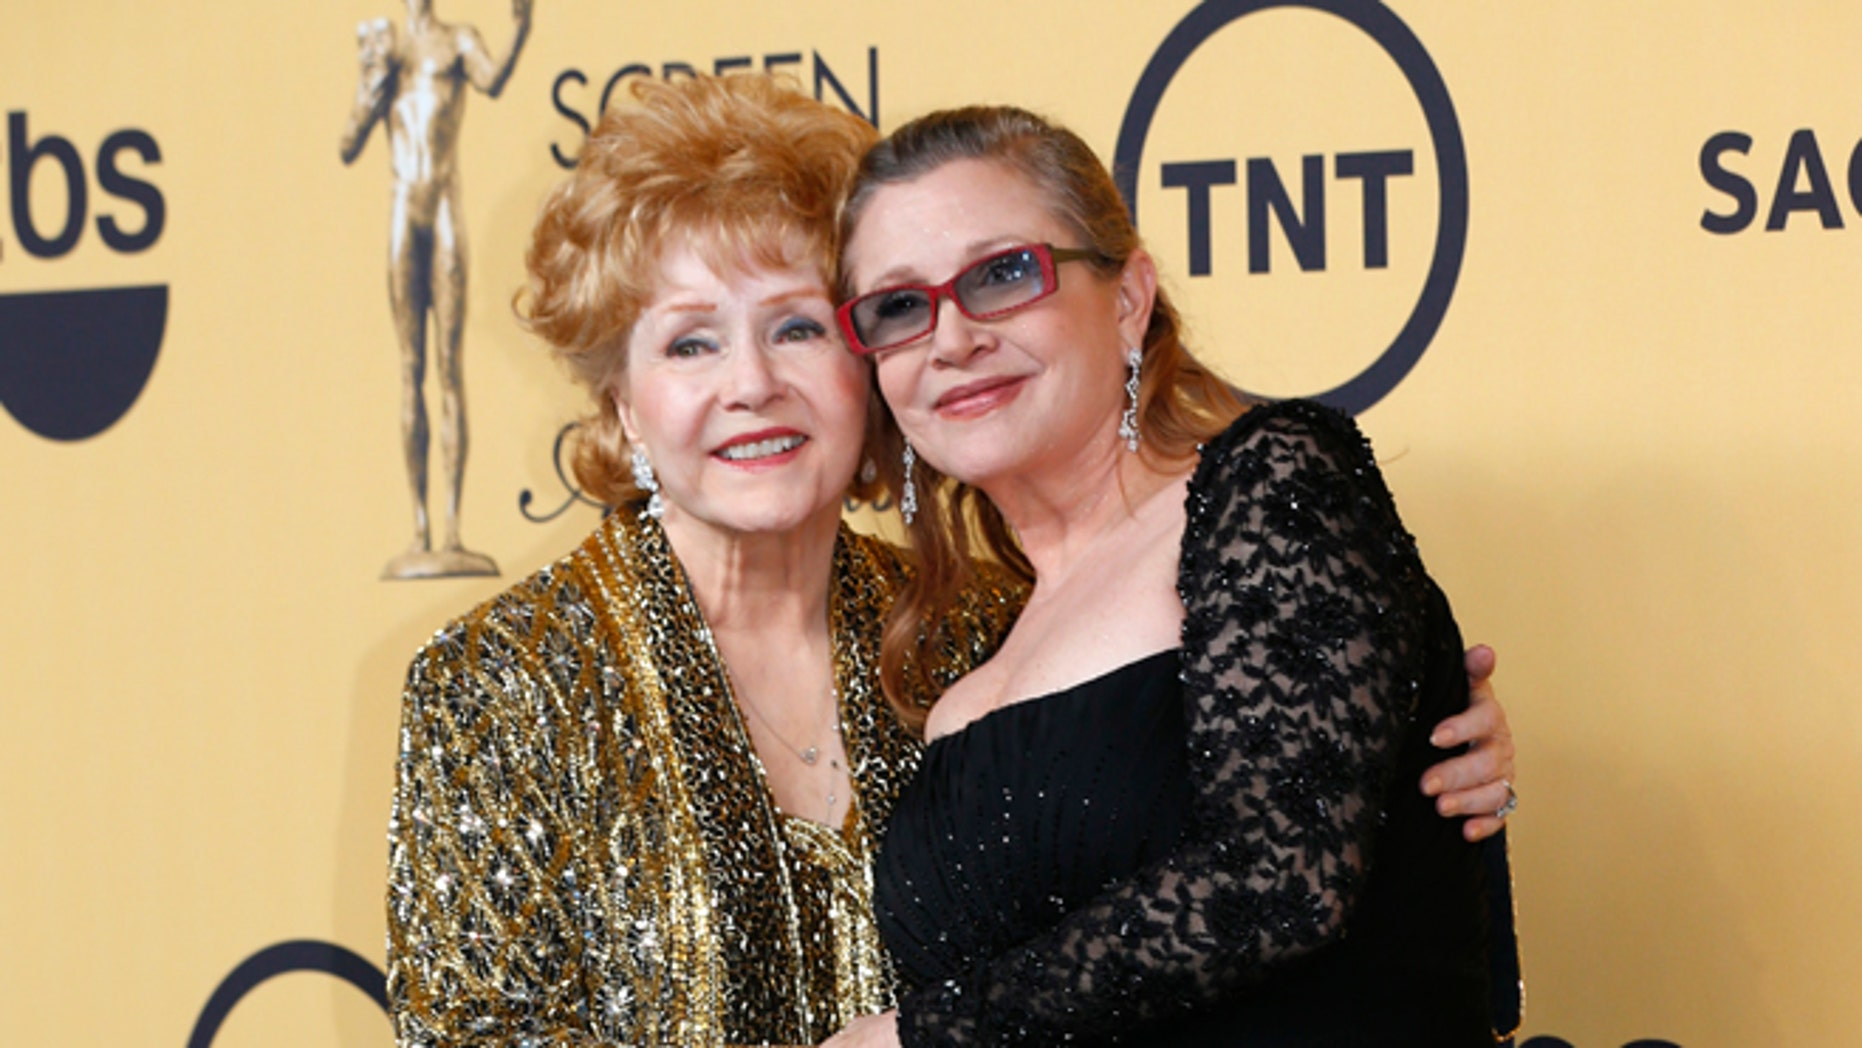 A date and location has been announced for a joint memorial service for Carrie Fisher and Debbie Reynolds.